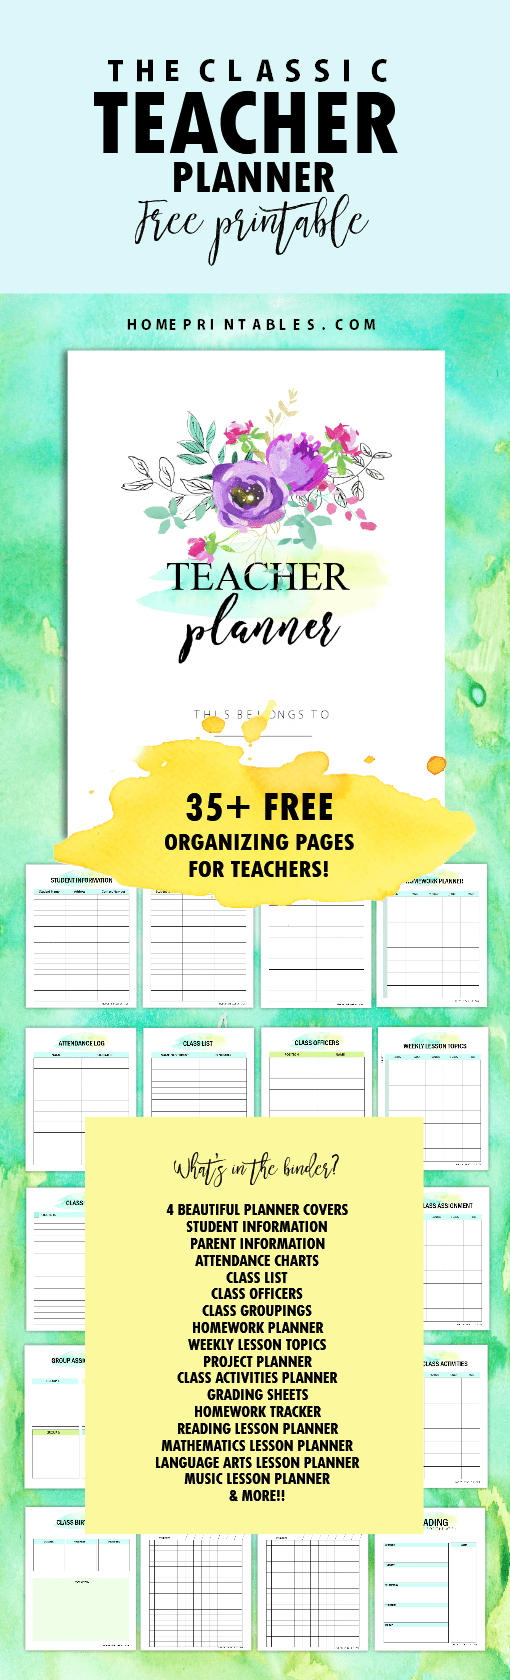 Free Teacher Planner Printables 35 Organizing Sheets Home Printables